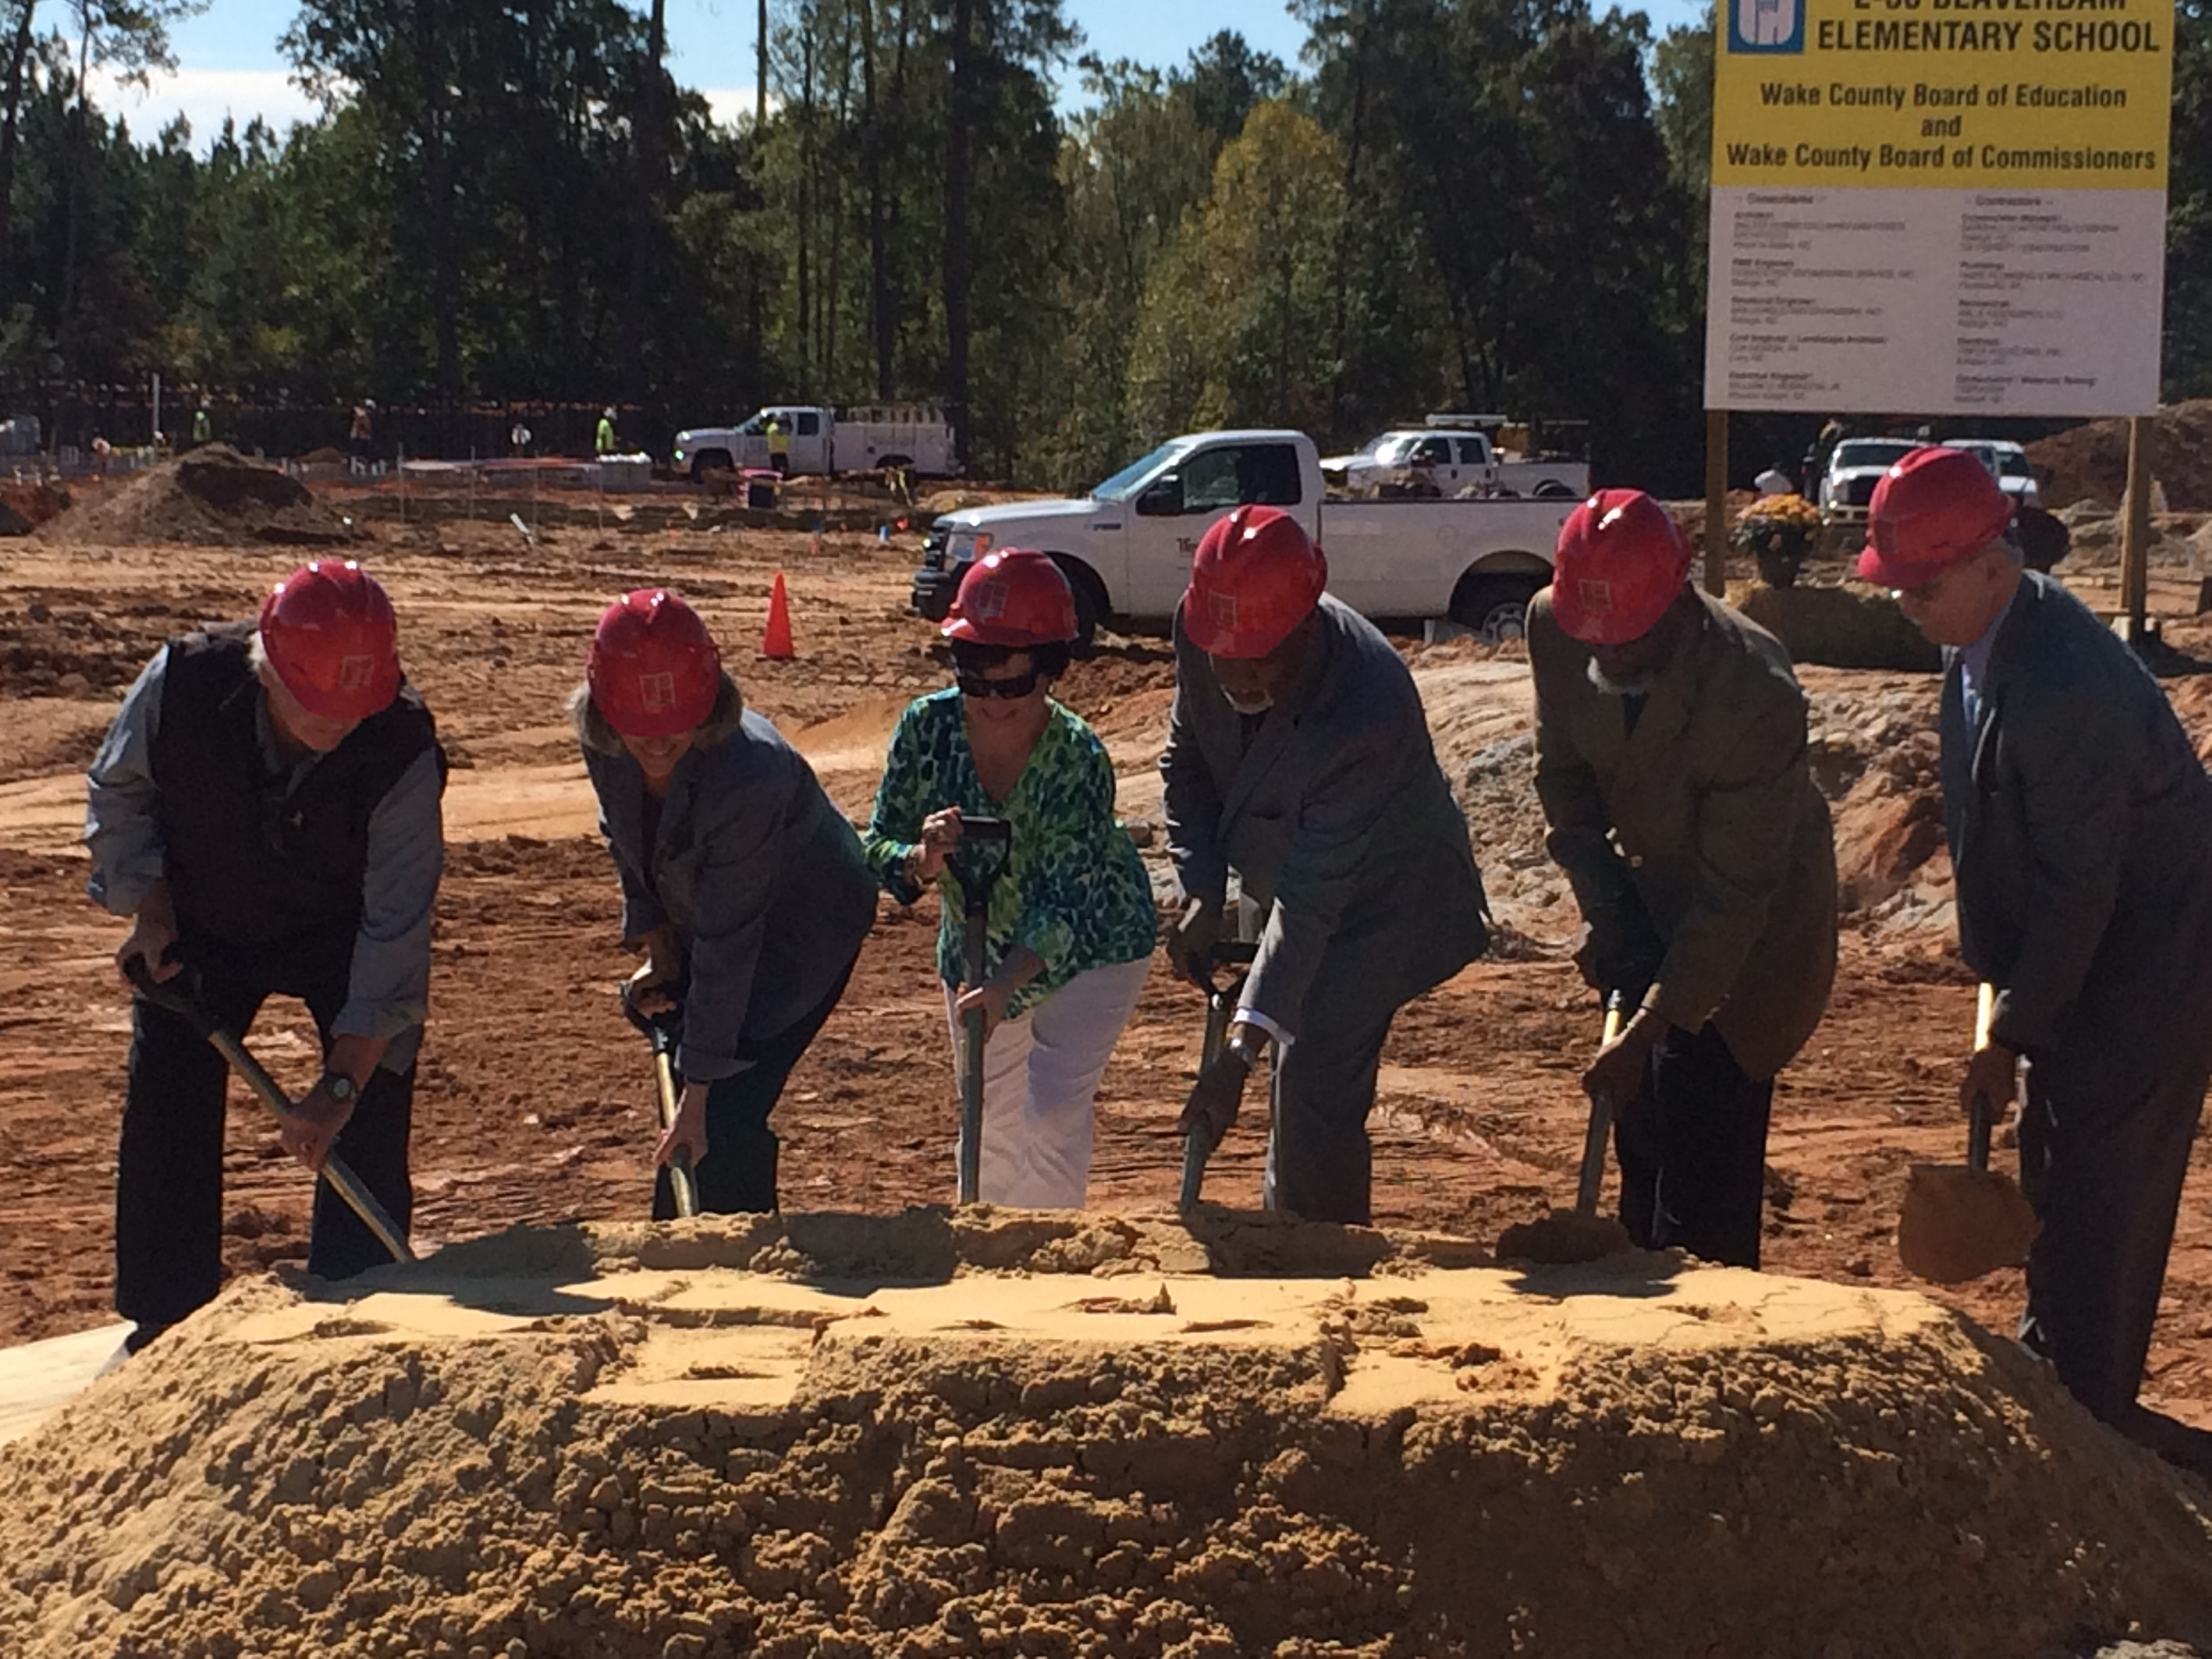 Beaverdam Elementary School Groundbreaking